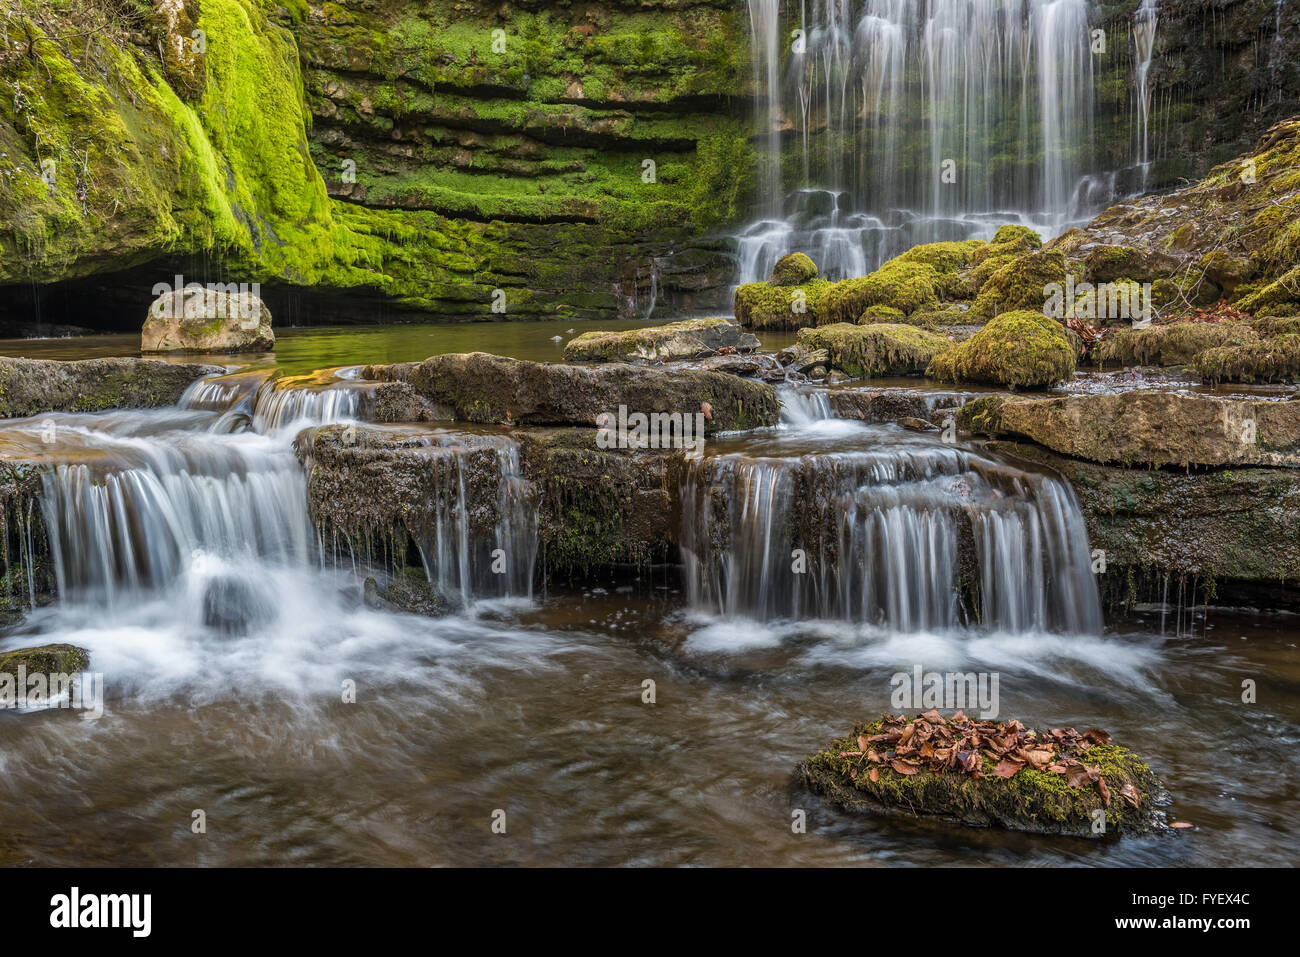 Scalebar Force waterfalls in the Yorkshire Dales near Settle - Stock Image